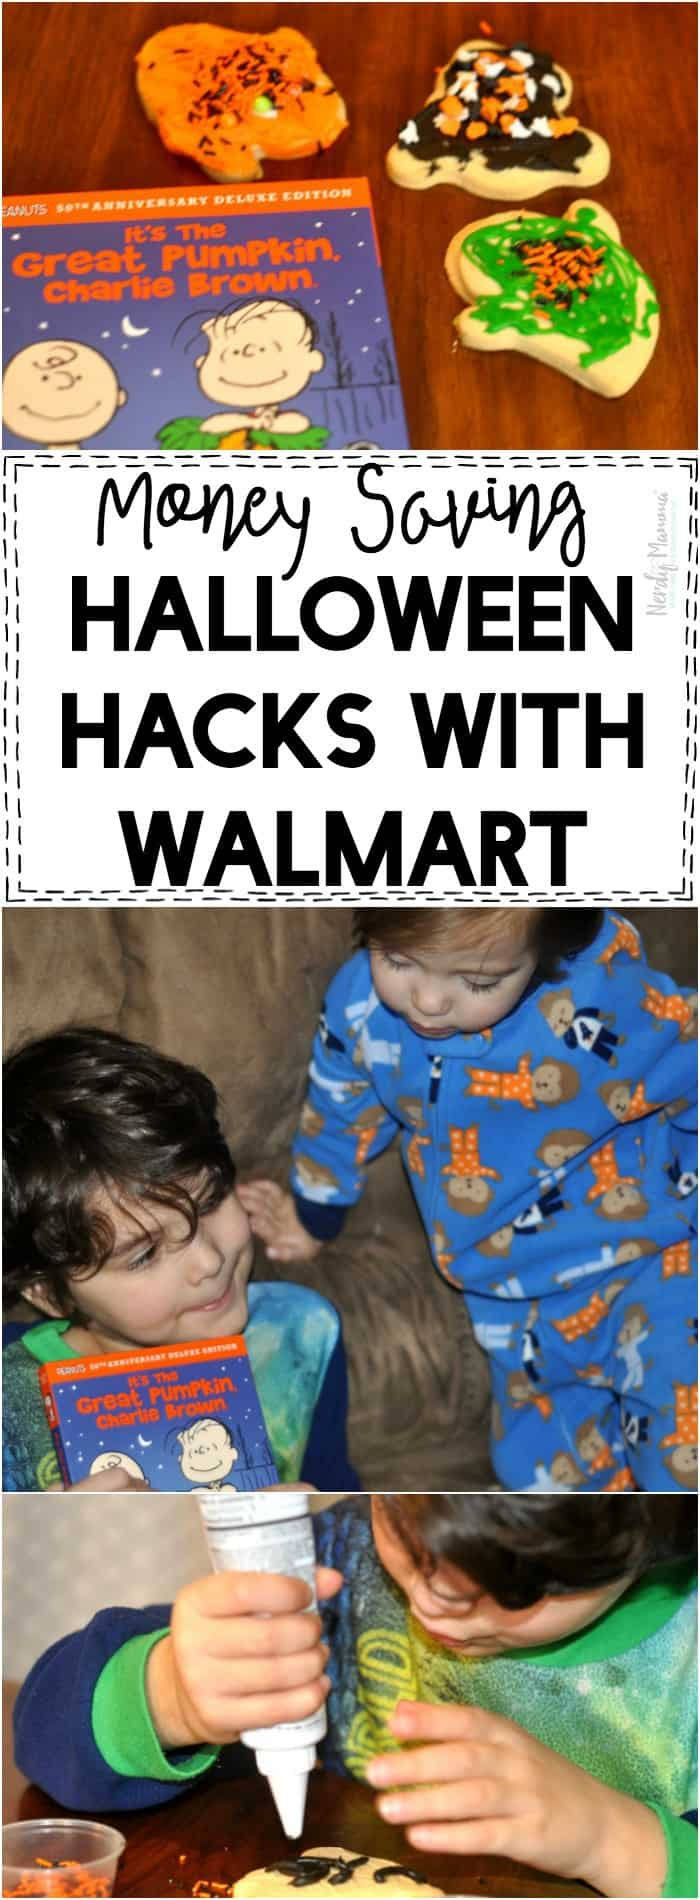 OMG! These Money Saving Halloween Hacks are LIFECHANGING! You need to check this out!